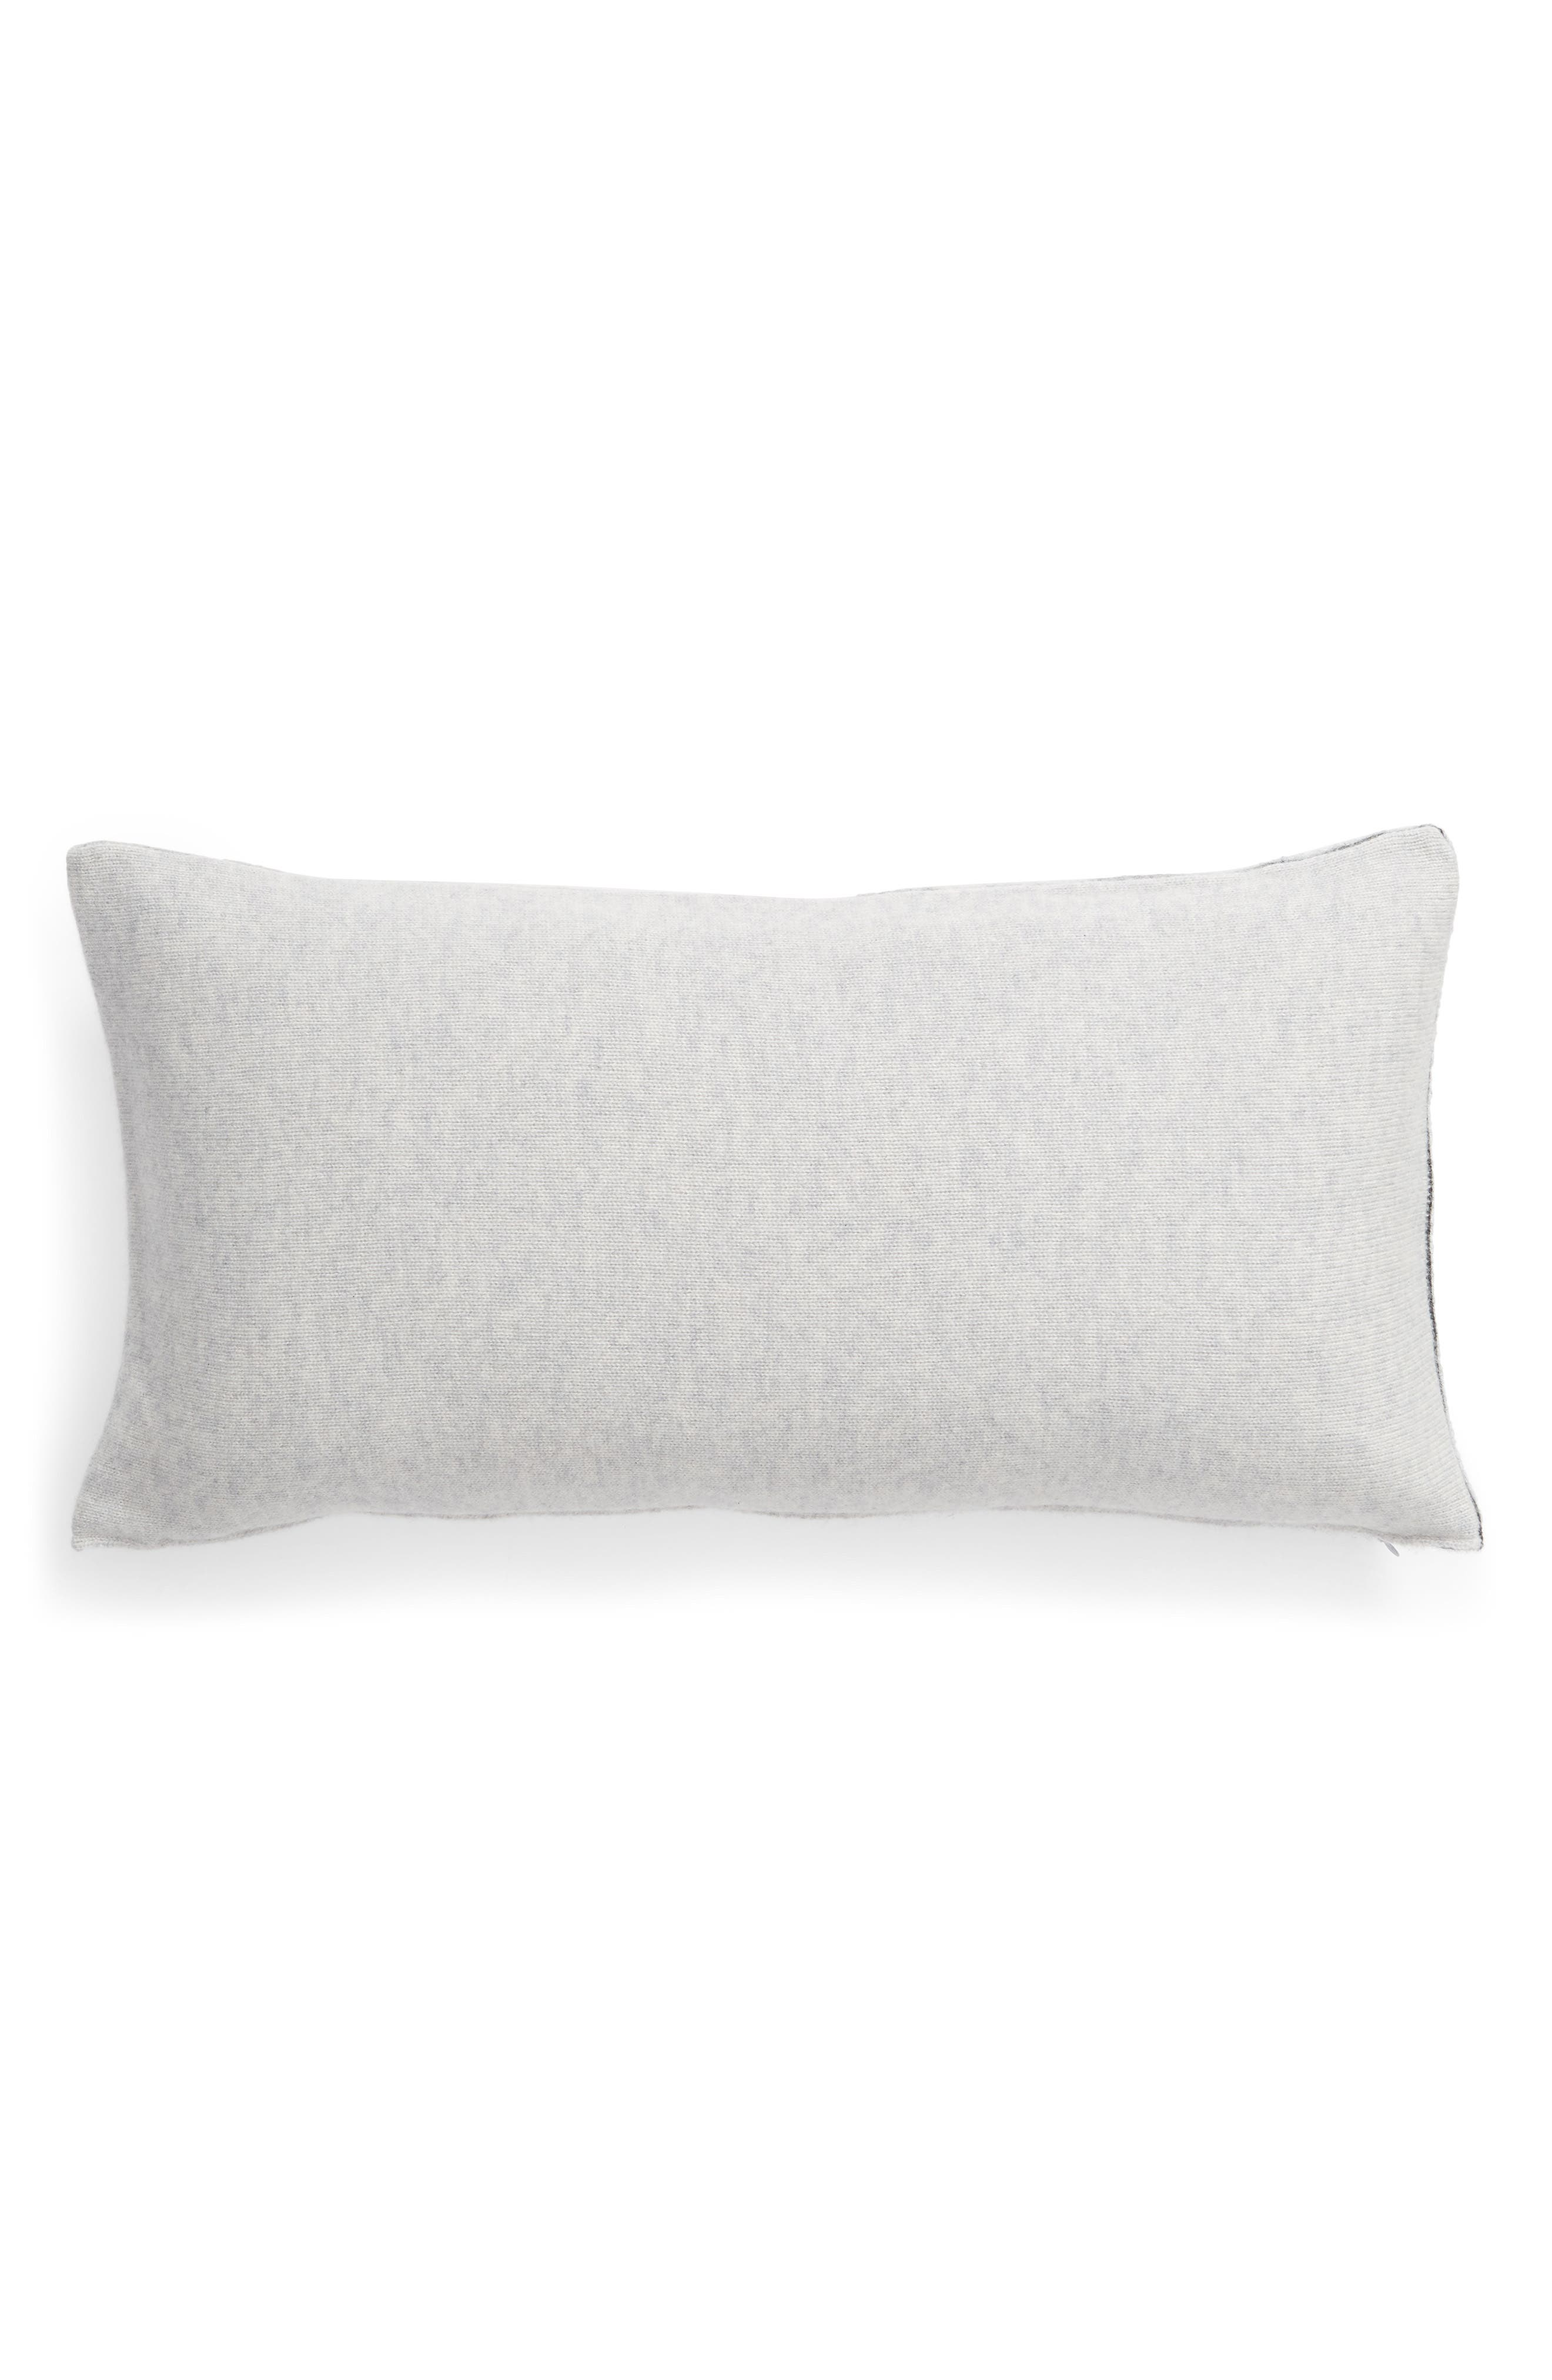 NORDSTROM SIGNATURE, Ombré Stripe Cashmere Accent Pillow, Alternate thumbnail 2, color, GREY CLAY MULTI